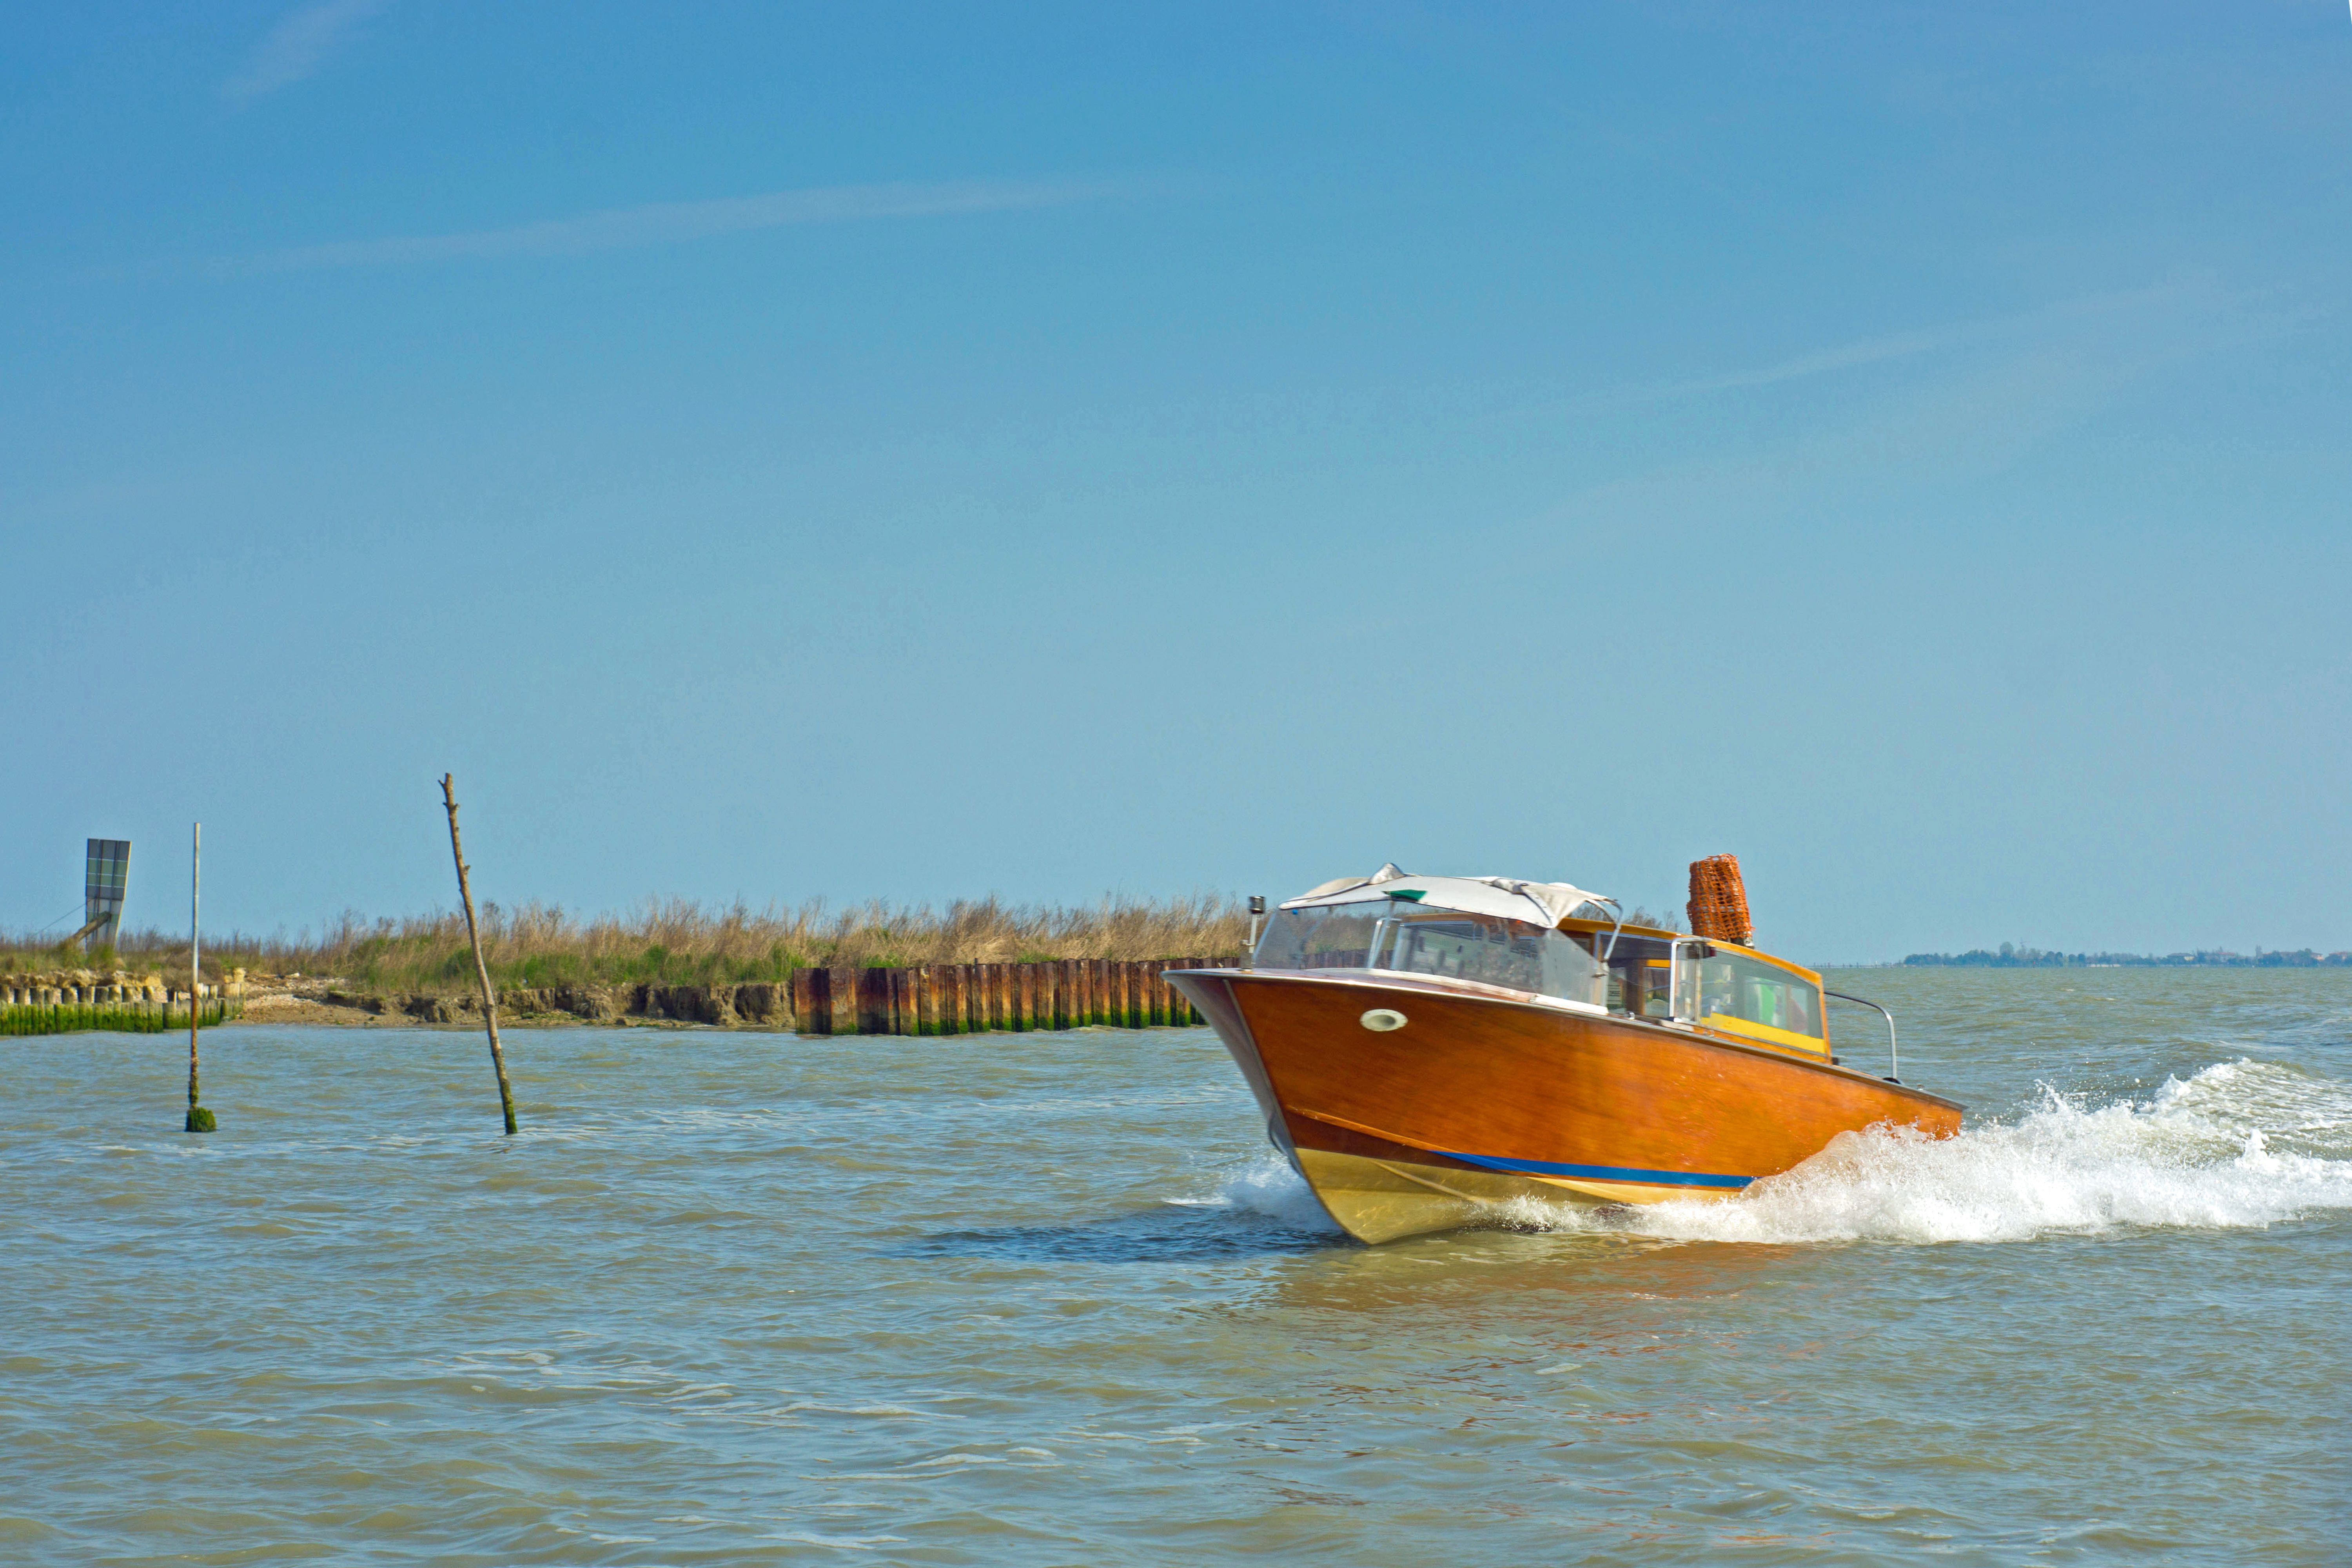 Water taxi going to Venice airport. This is one of the wooden hulled 50s style taxis and is seen on its way through the allotted route marked by wooden stakes either side.